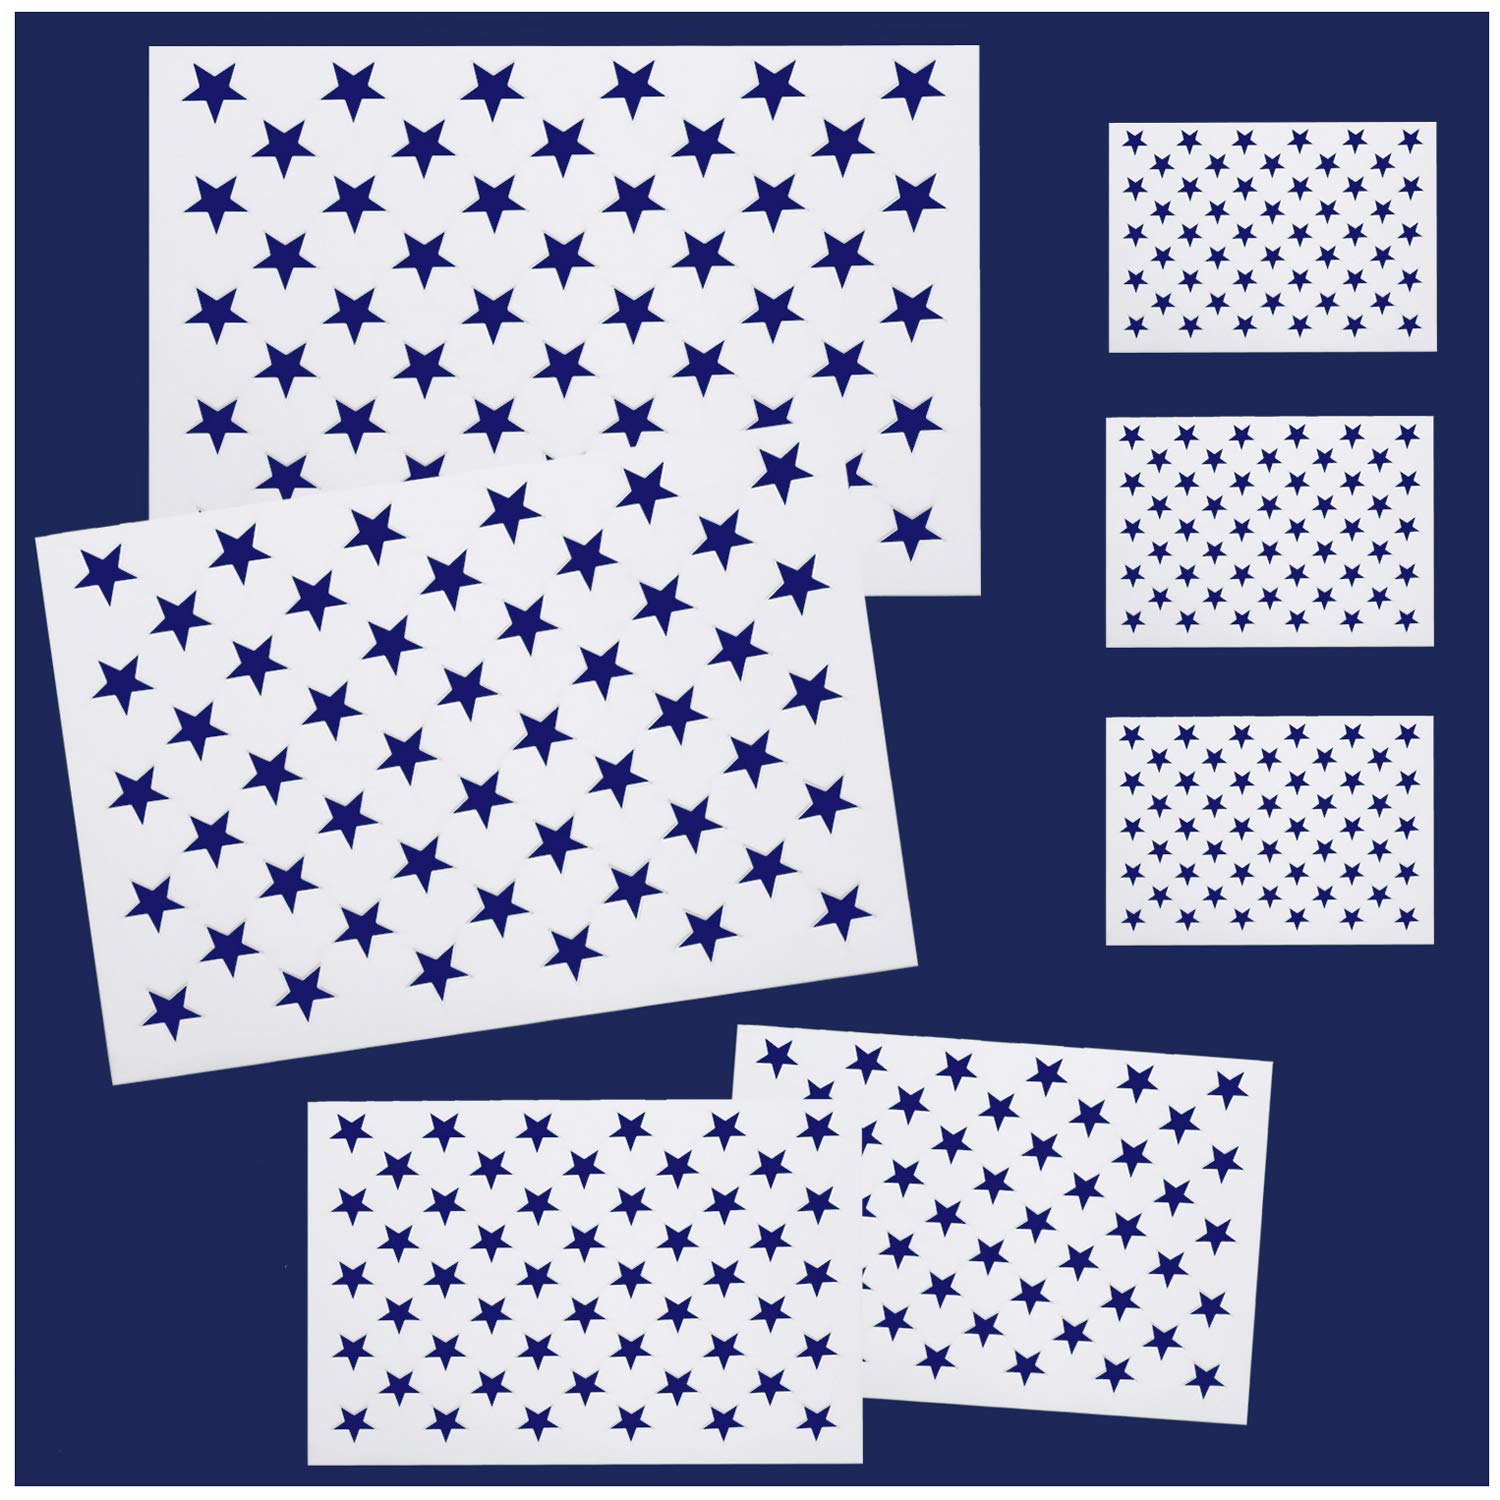 Whaline 7 Pieces American Flag 50 Stars Stencil Template for Painting on Wood, Fabric, Paper, Airbrush, Walls Art, 2 Large, 2 Medium and 3 Small